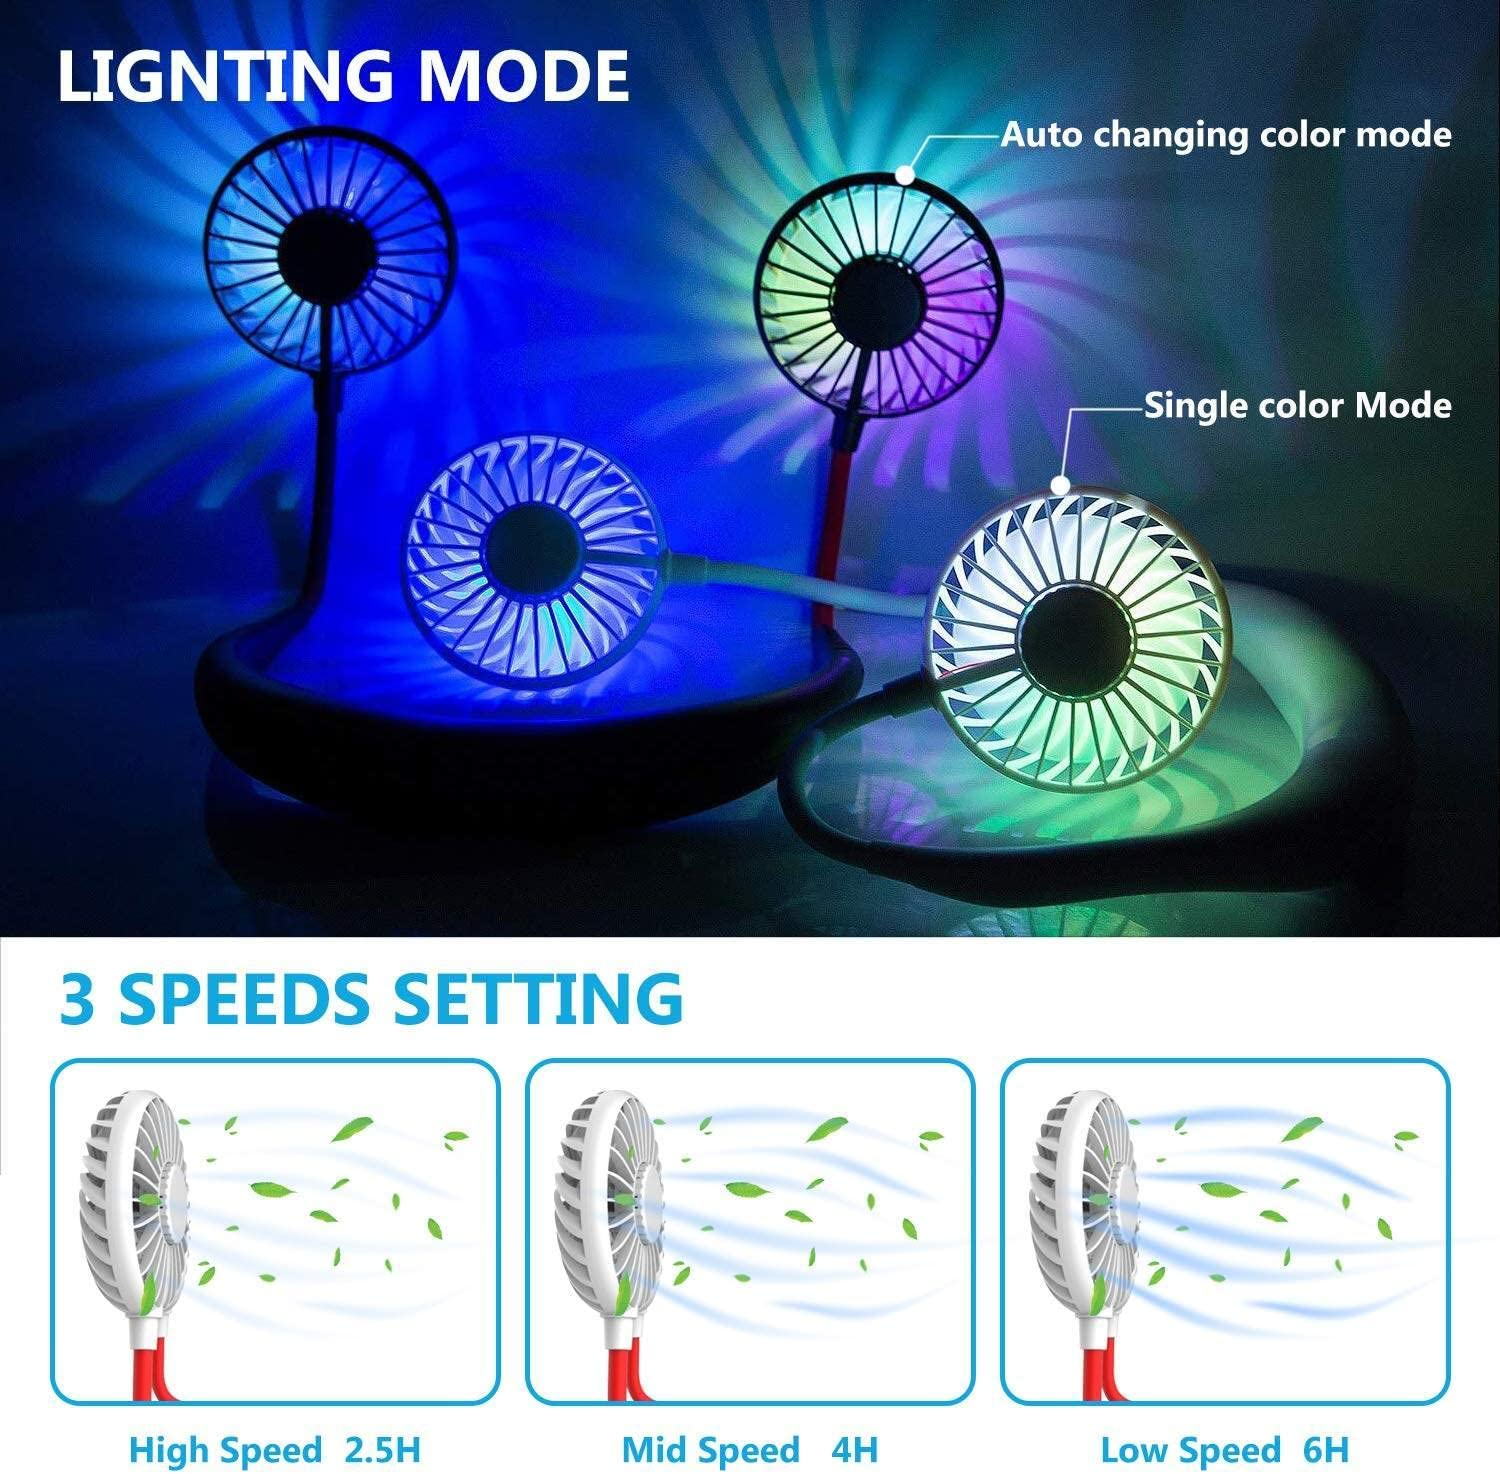 Usb Chargeable 3 Speeds For Outdoor Walking Sports Traveling Hiking,White LED 7 Color Light 360/° Rotation Headphone Design Wearable Dual Wind Head Fan Portable Neckband Mini Fan